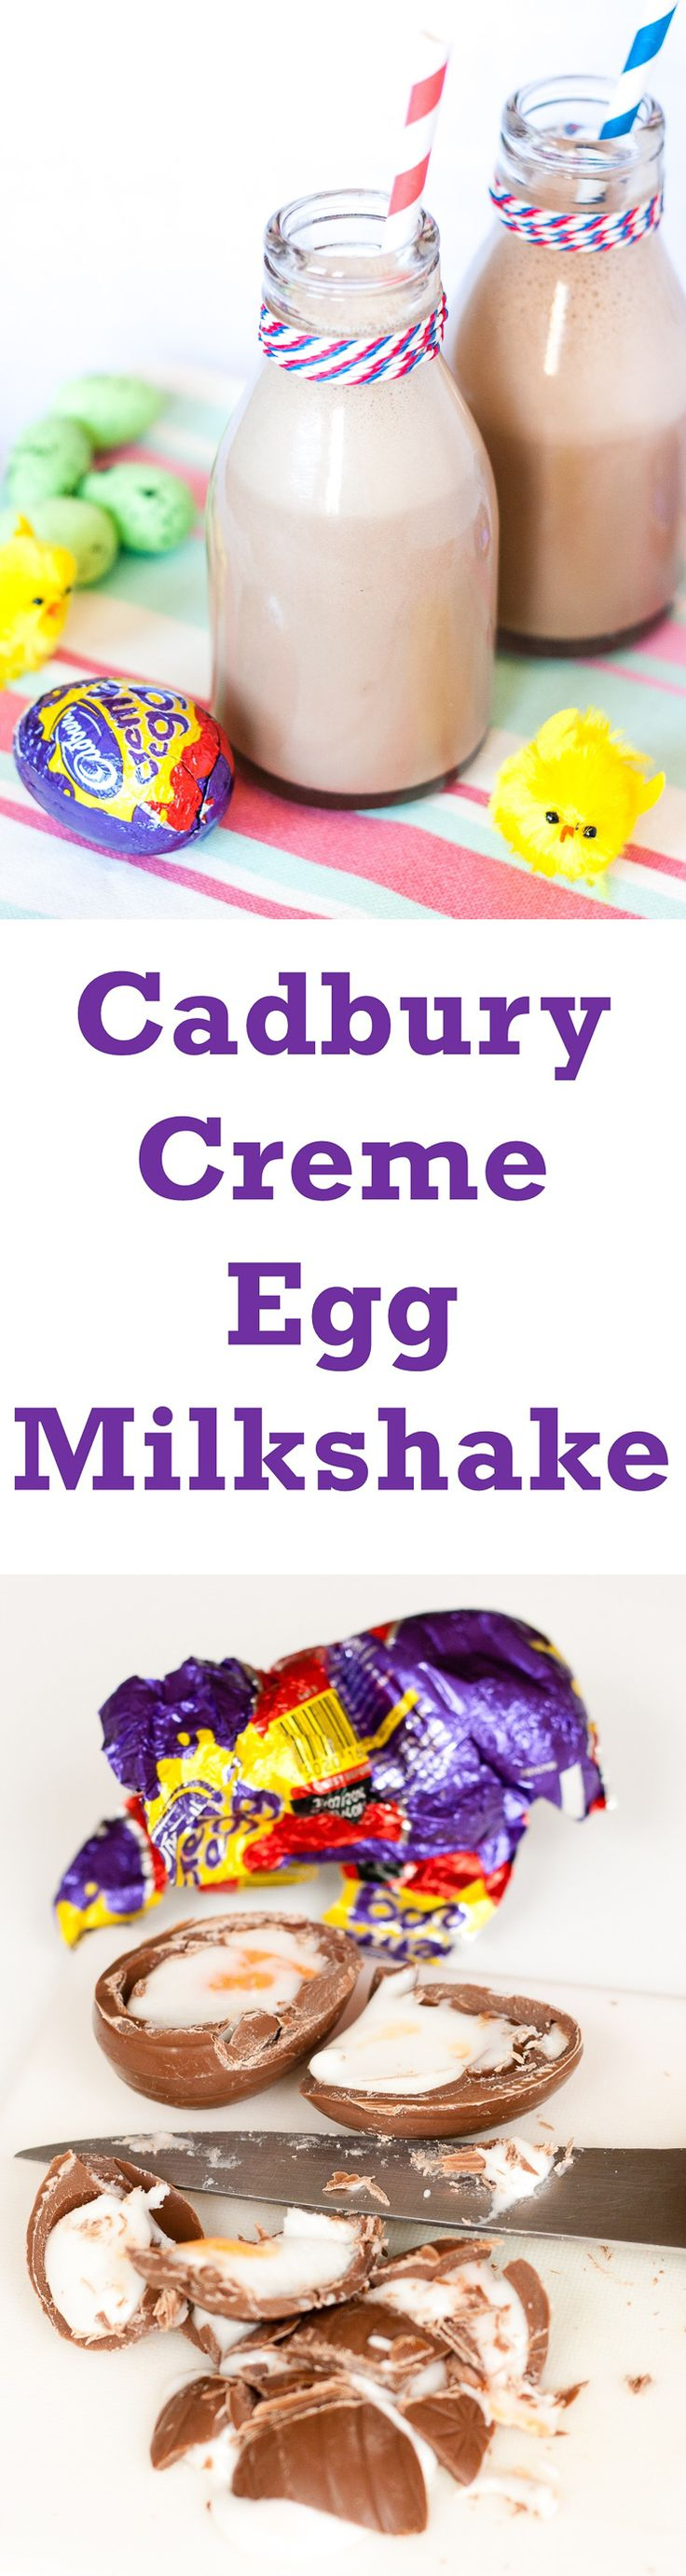 Delicious, indulgent, easy to make Cadbury Creme Egg Milkshake – perfect for a treat this Easter